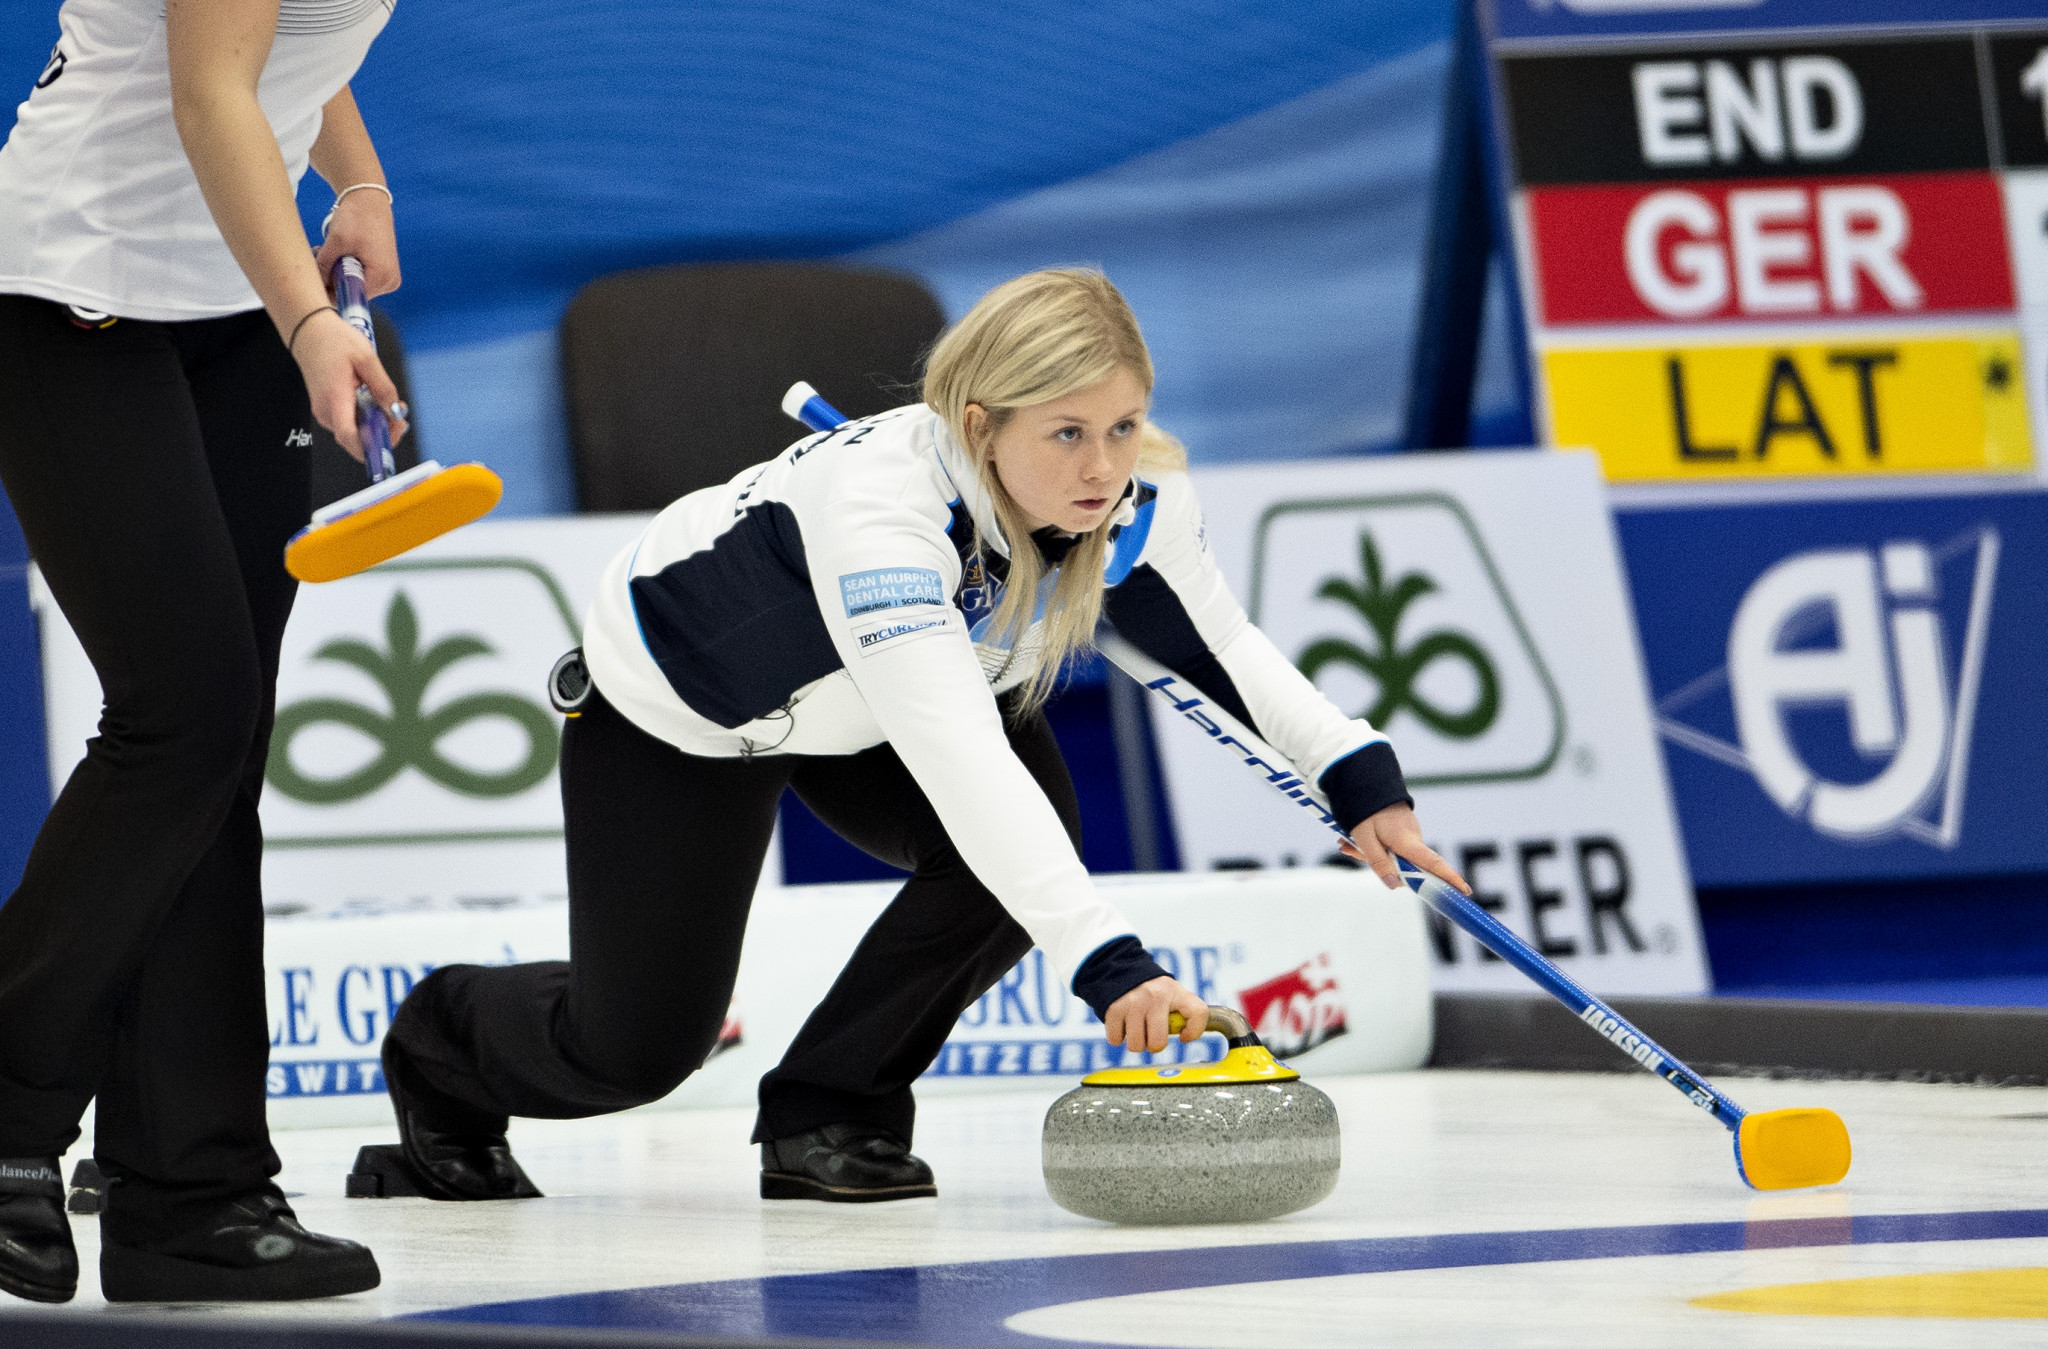 Graham Lindsay will oversee Scotland competing at the World Curling Championships ©Getty Images